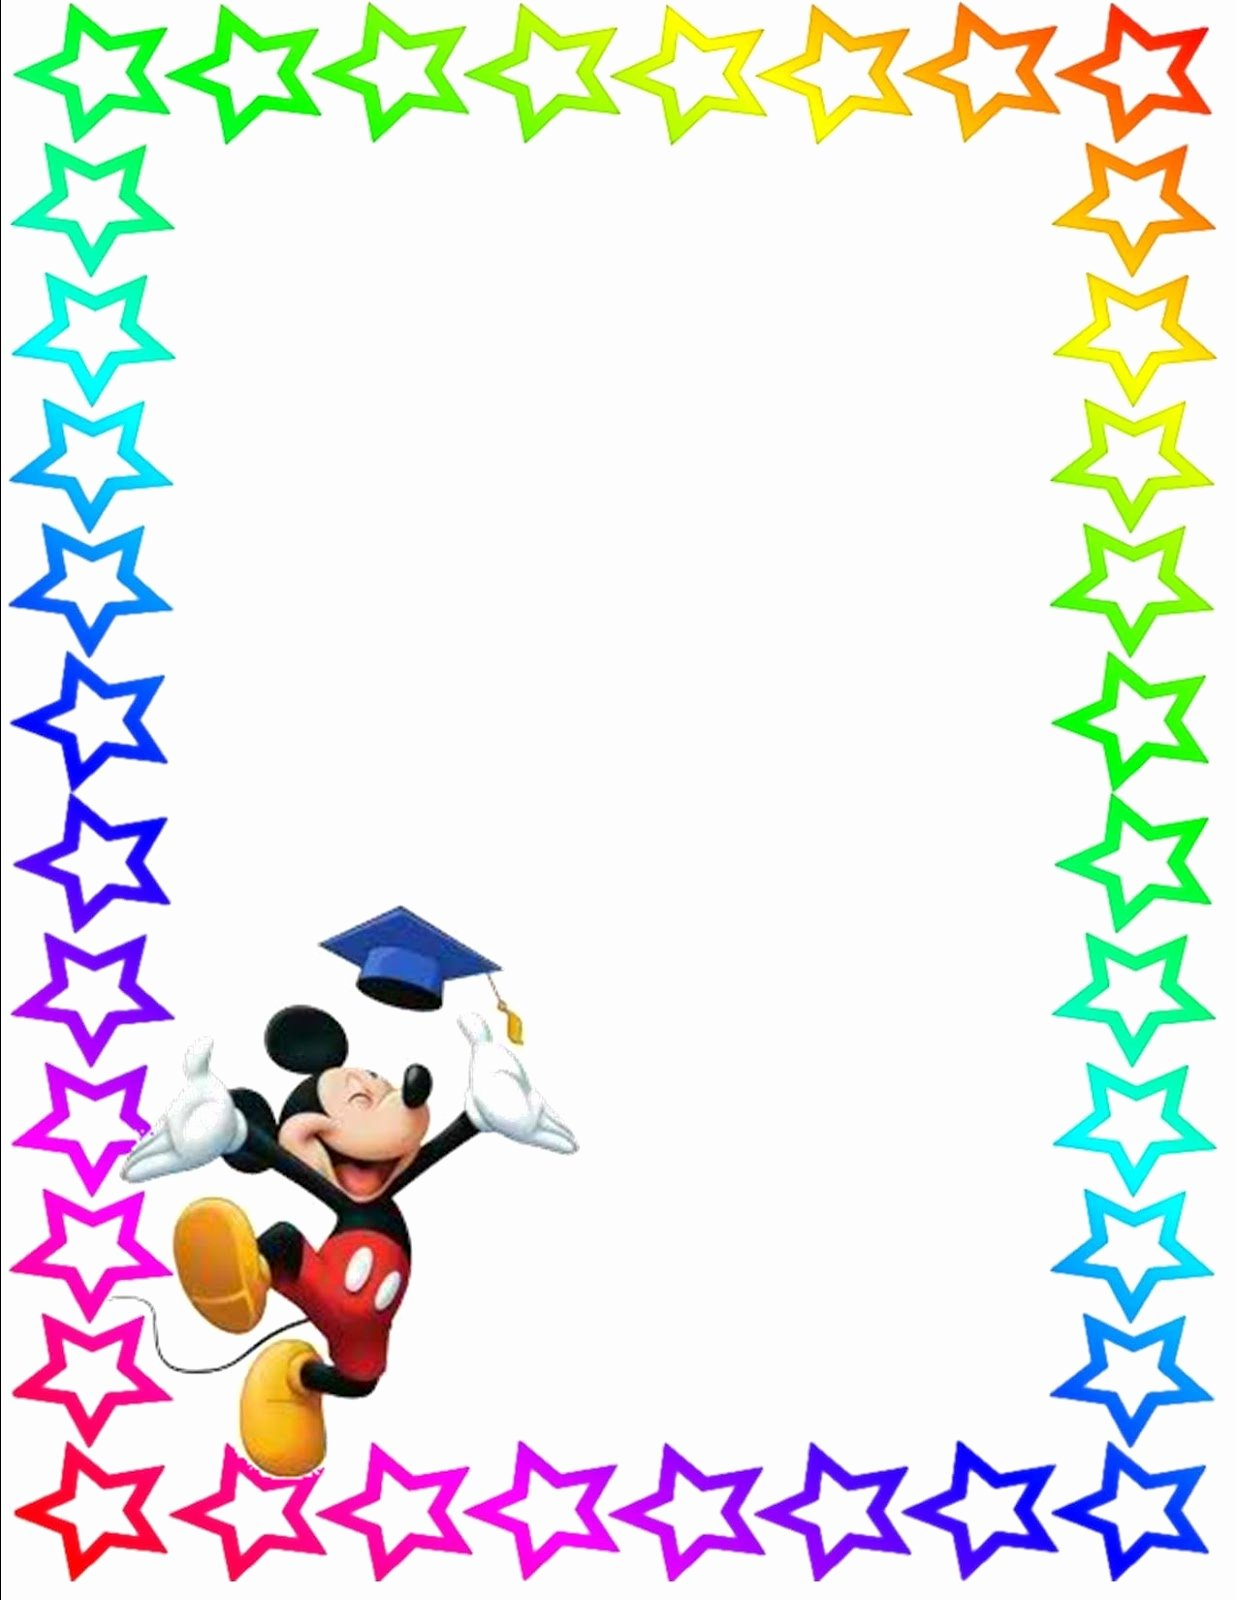 Graduation Borders and Backgrounds Best Of Free Free Graduation Borders Download Free Clip Art Free